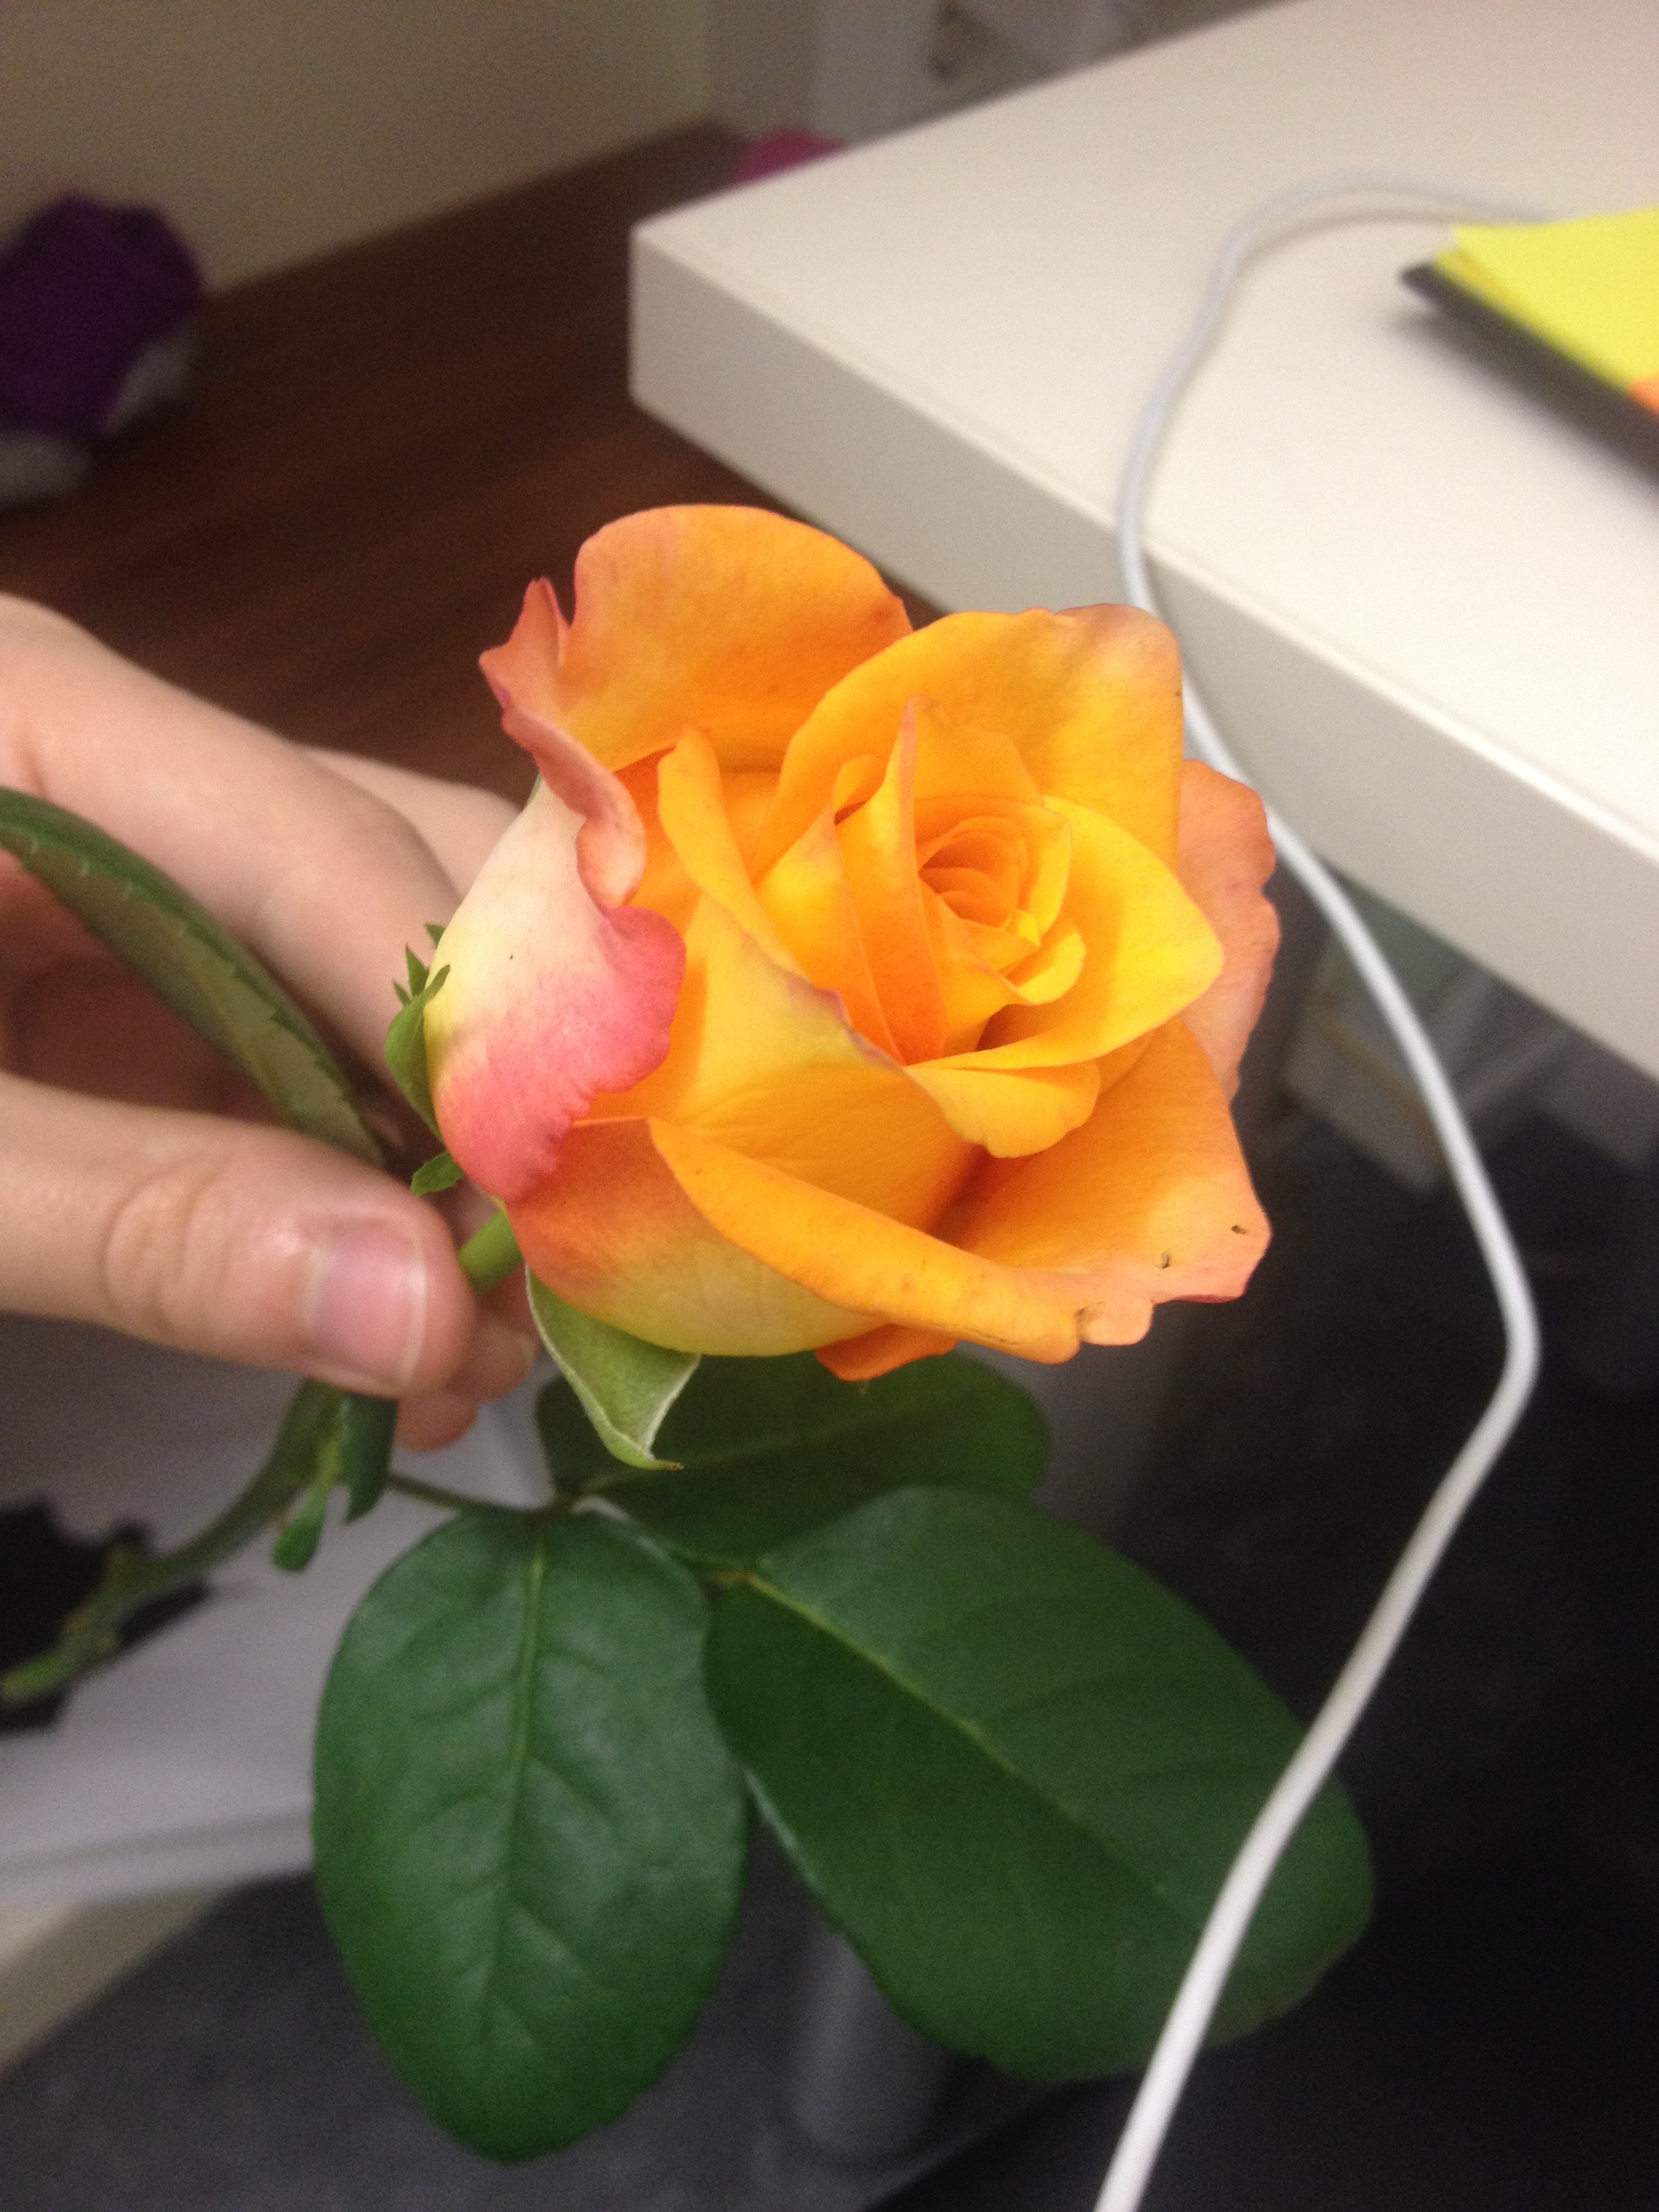 The rose that my sweet friend Lory left on my door for my birthday!